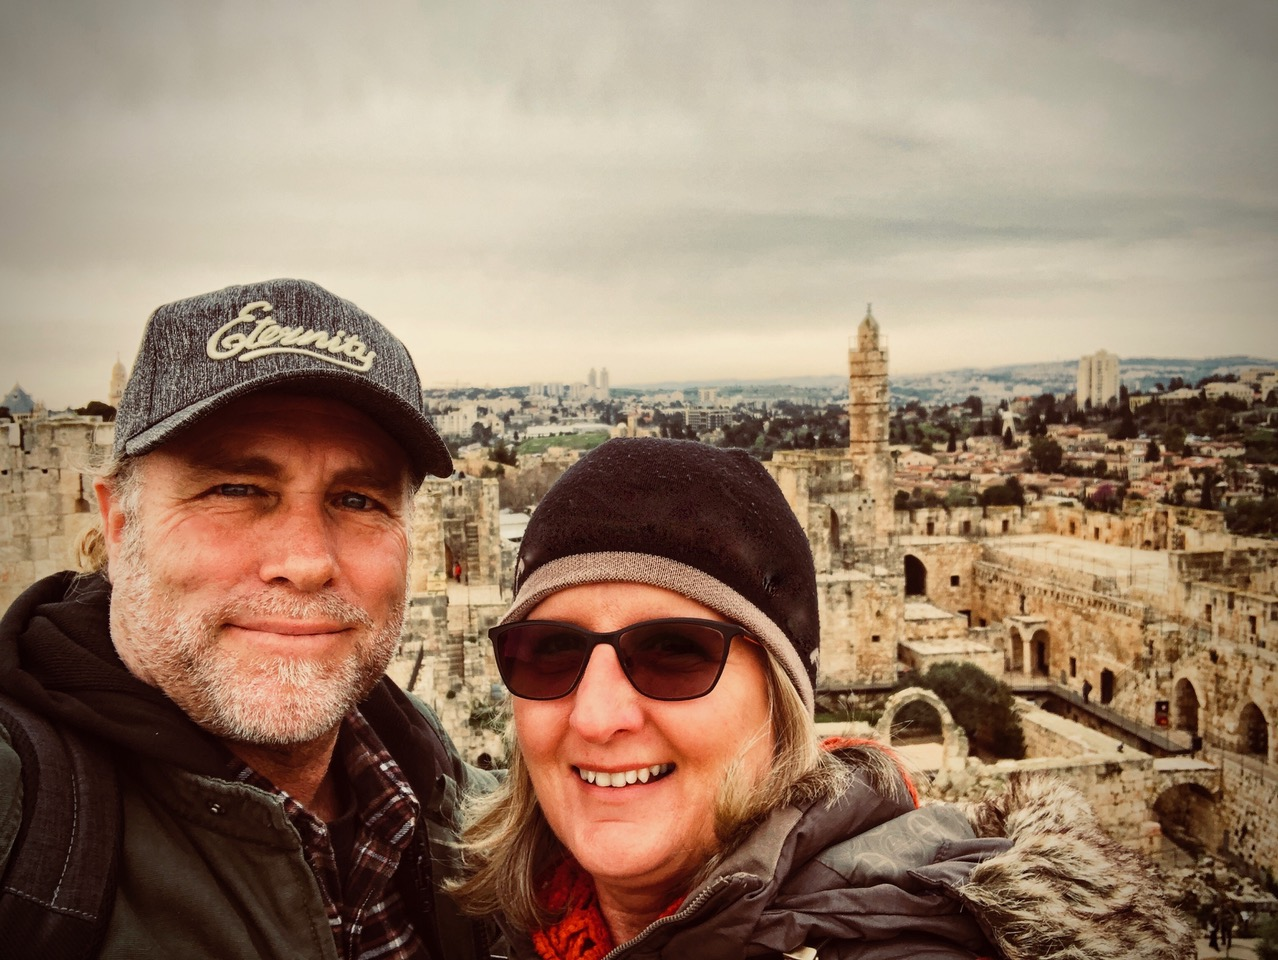 Pictured: Steve and Kerrie at King David's citadel in the Old City, Jerusalem.